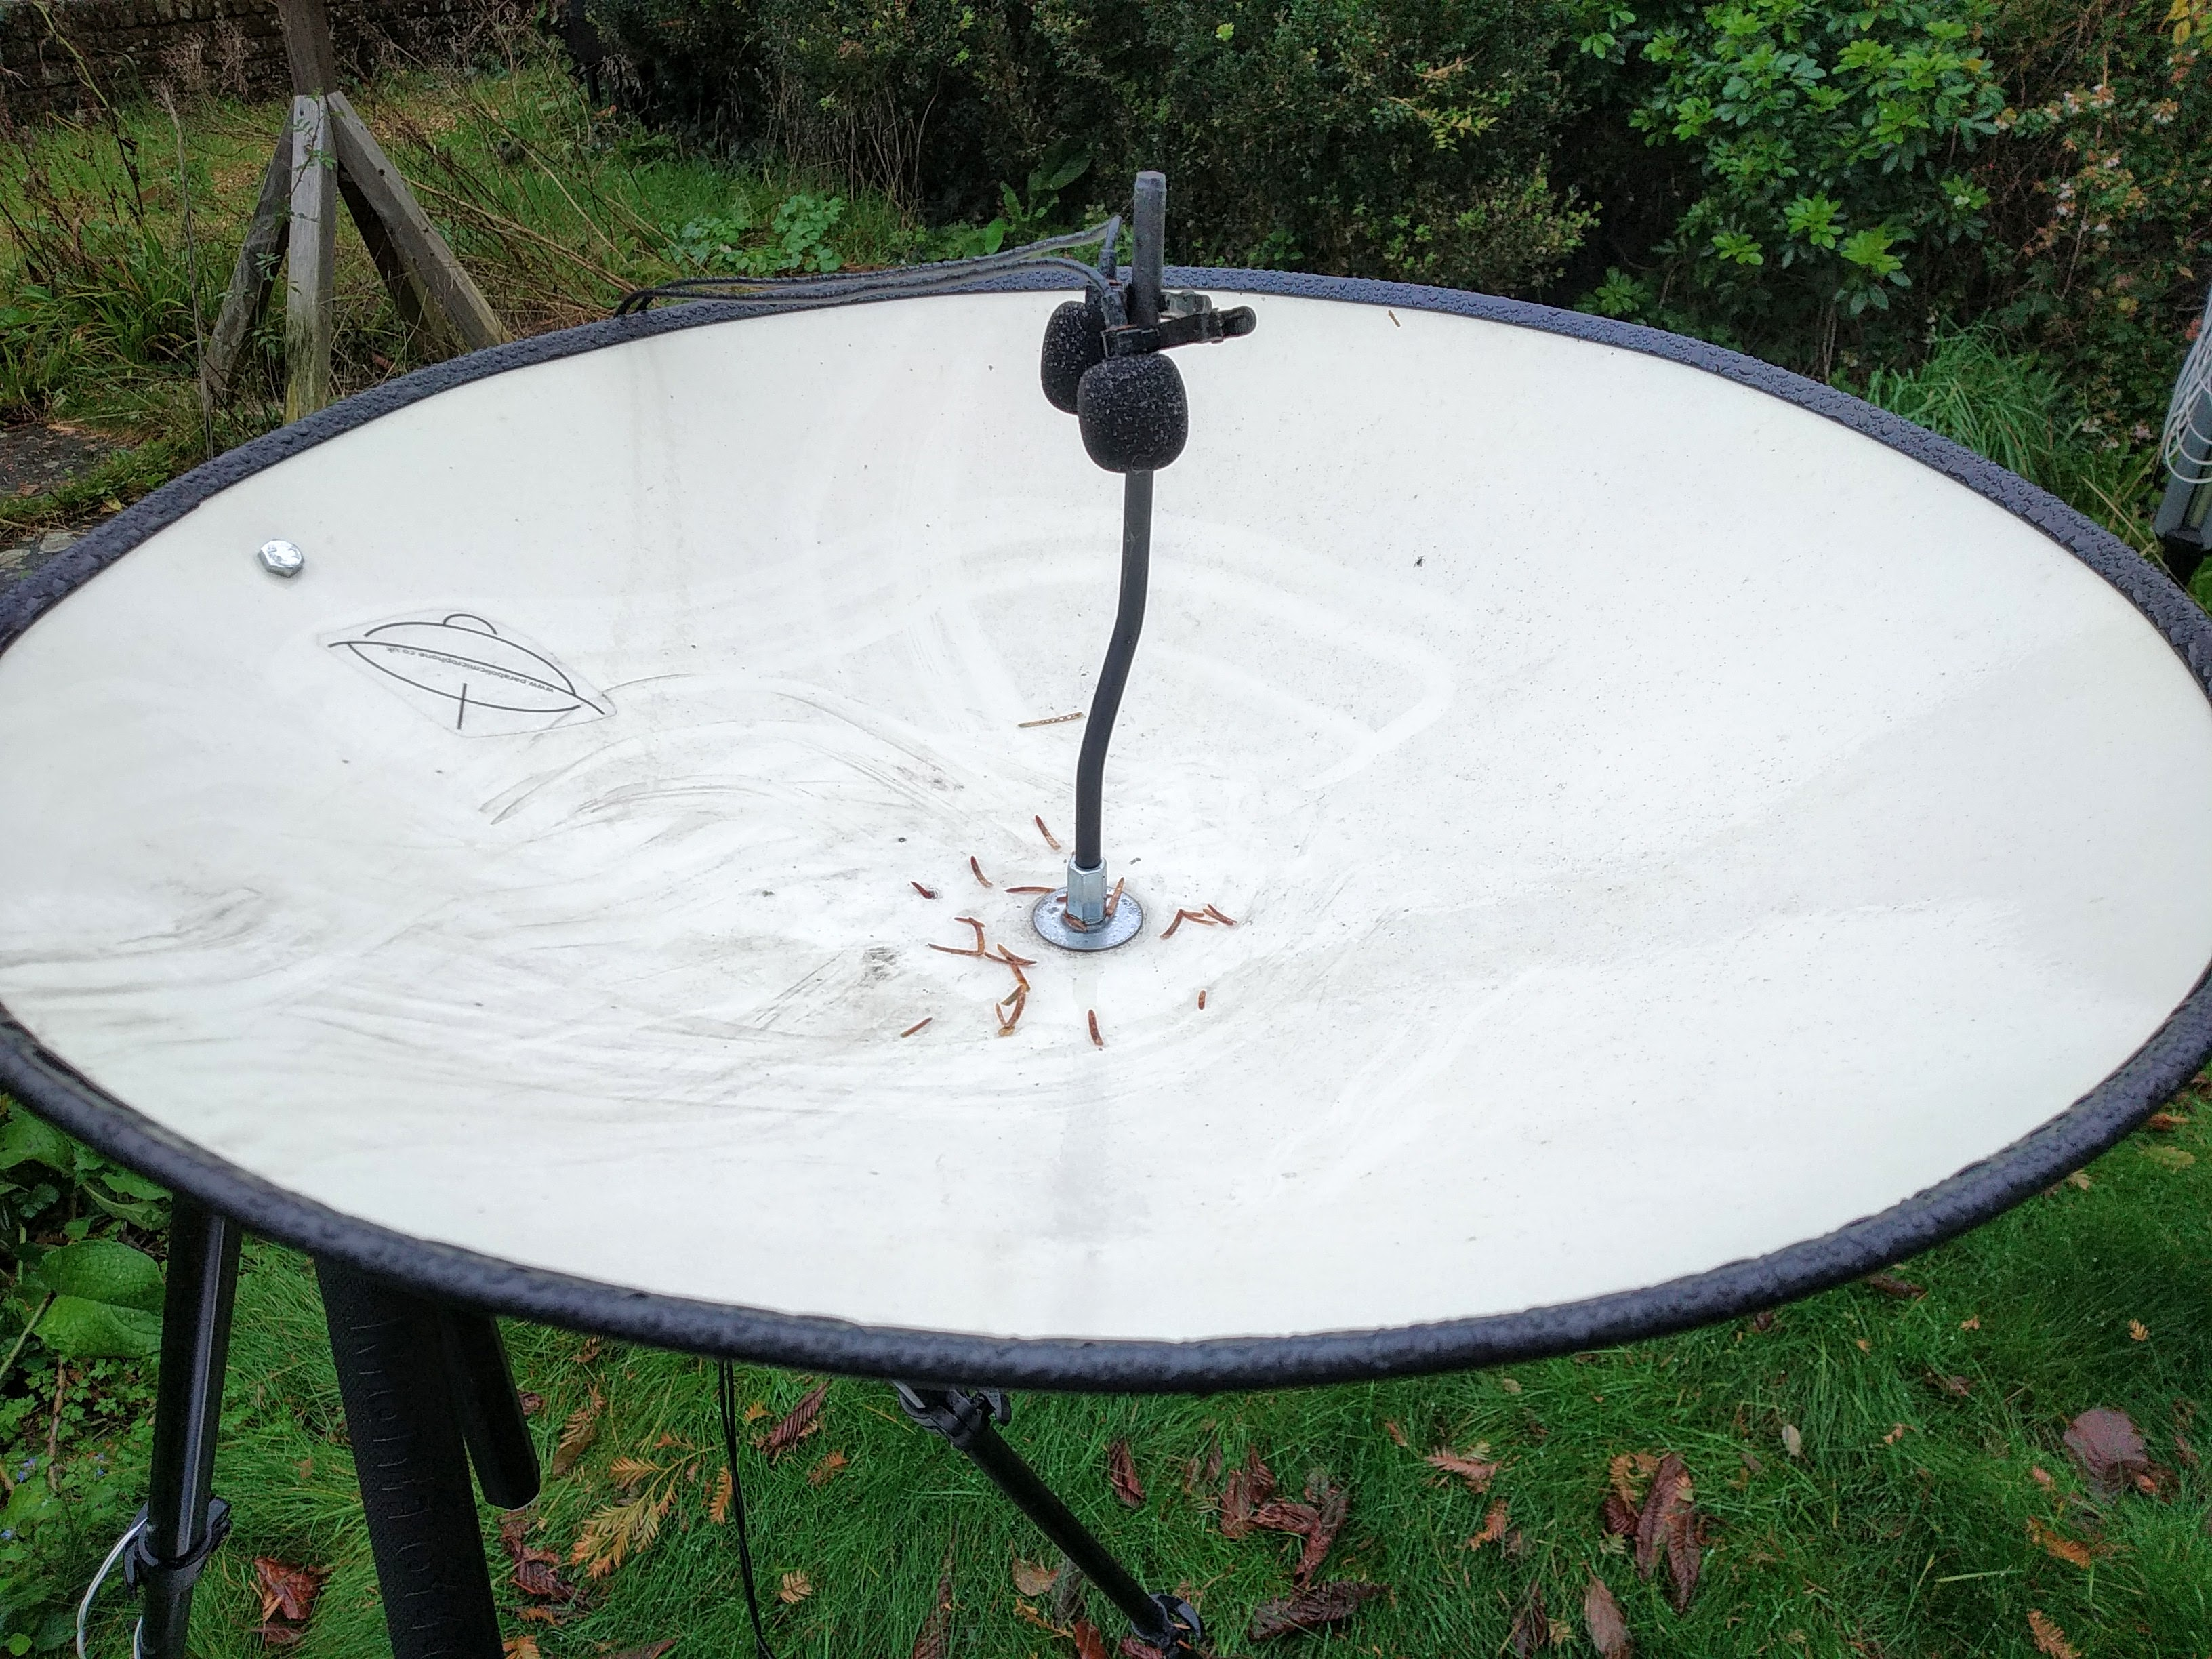 Parabolic dish with two microphones